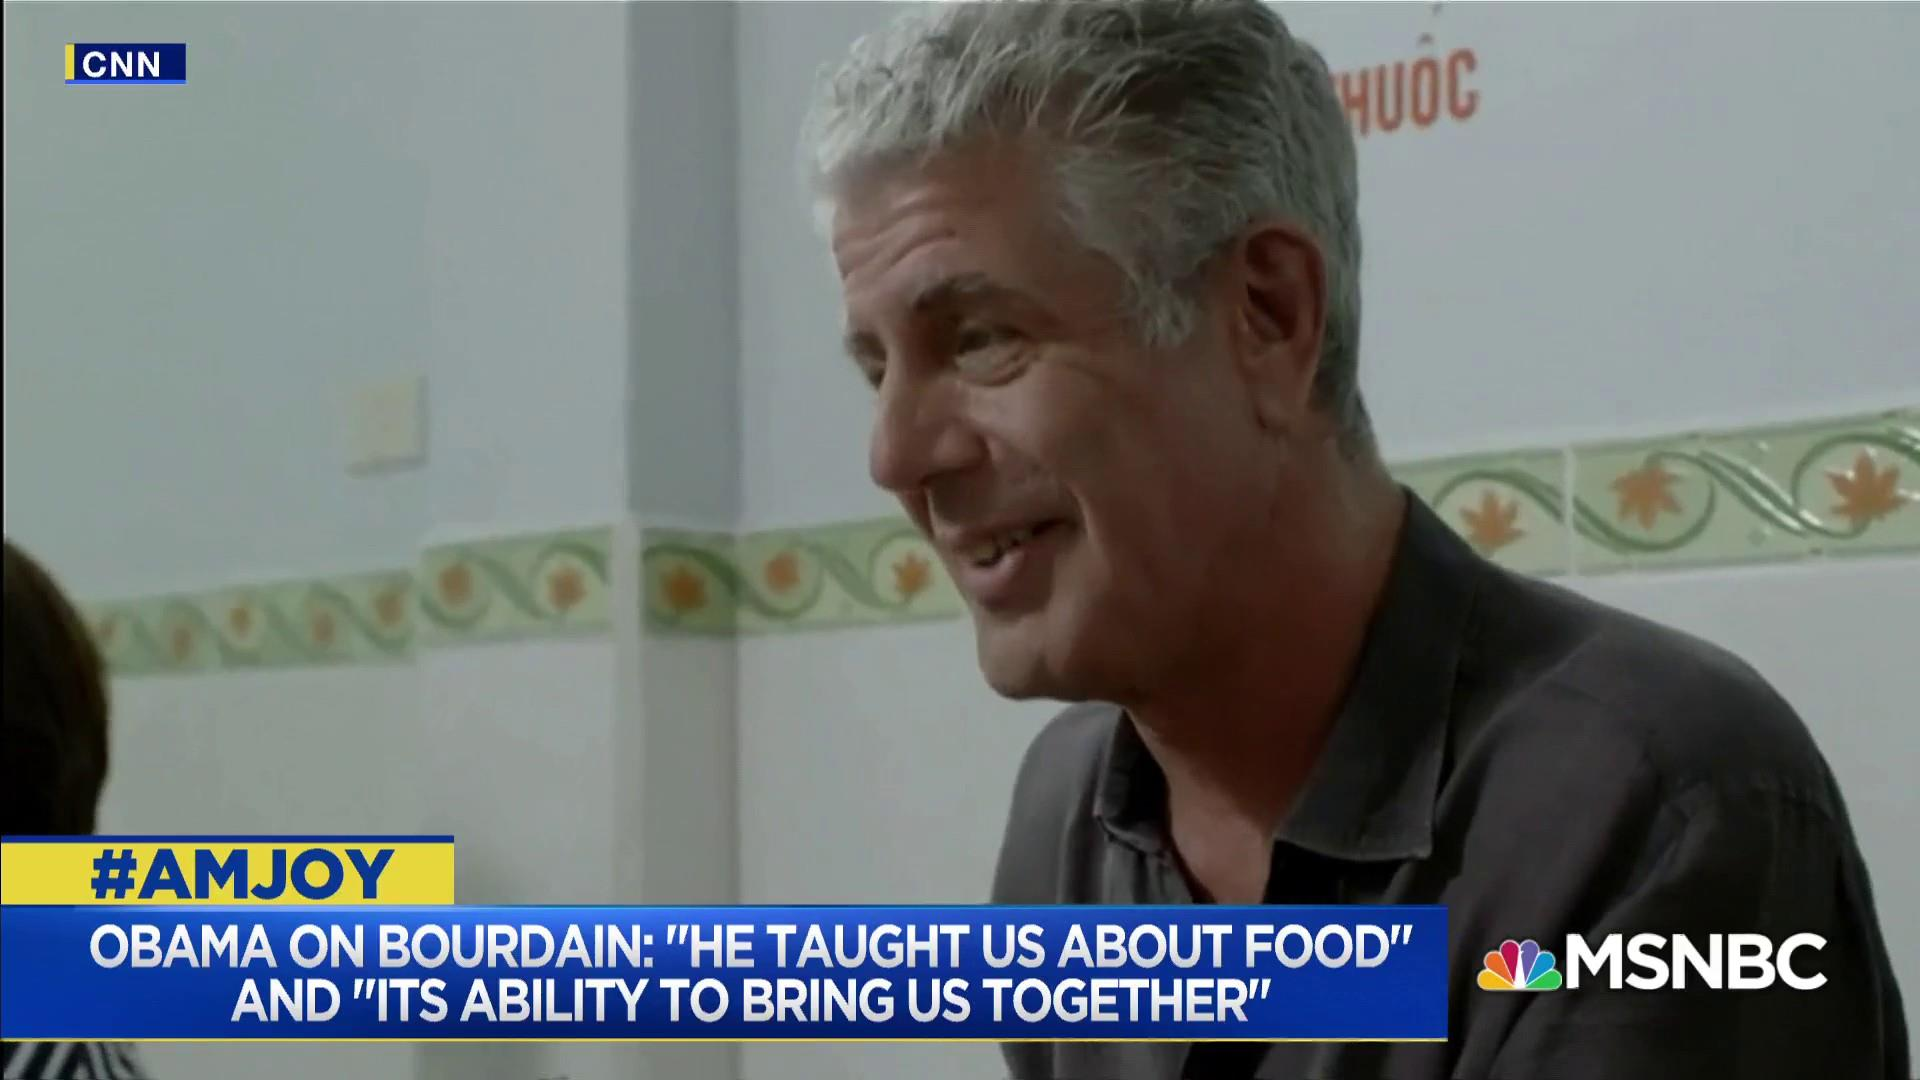 Remembering Anthony Bourdain, beloved chef, traveler, storyteller